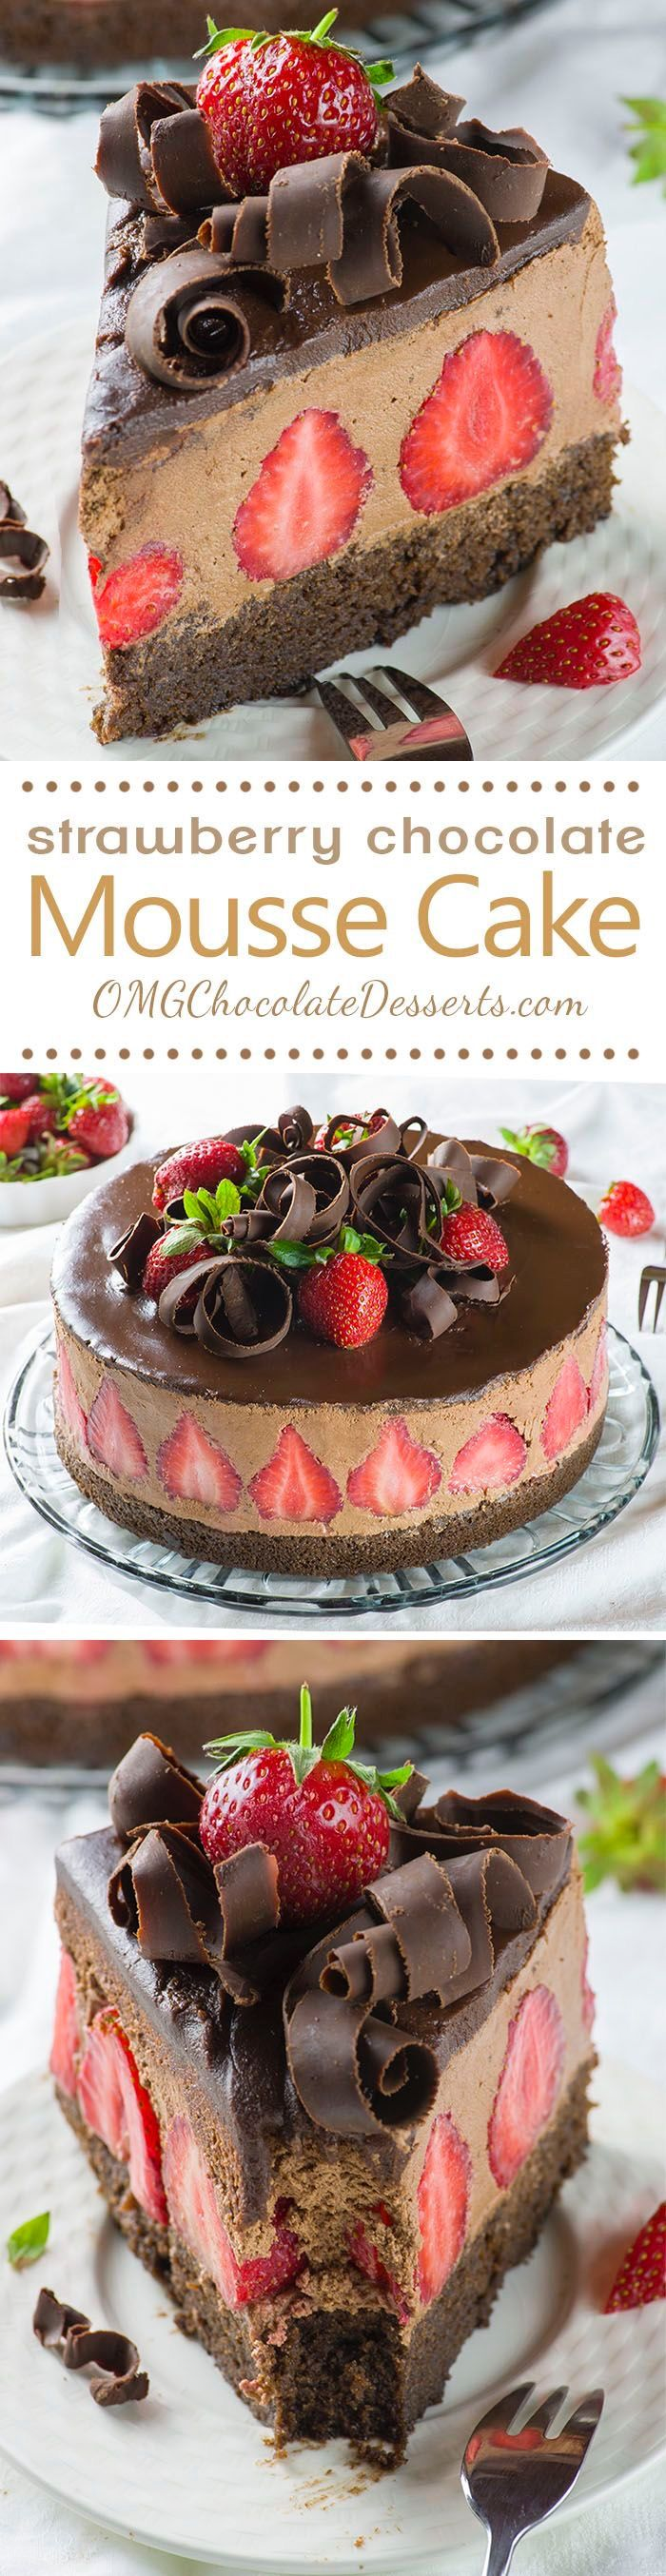 Strawberry Chocolate Mousse Cake.....